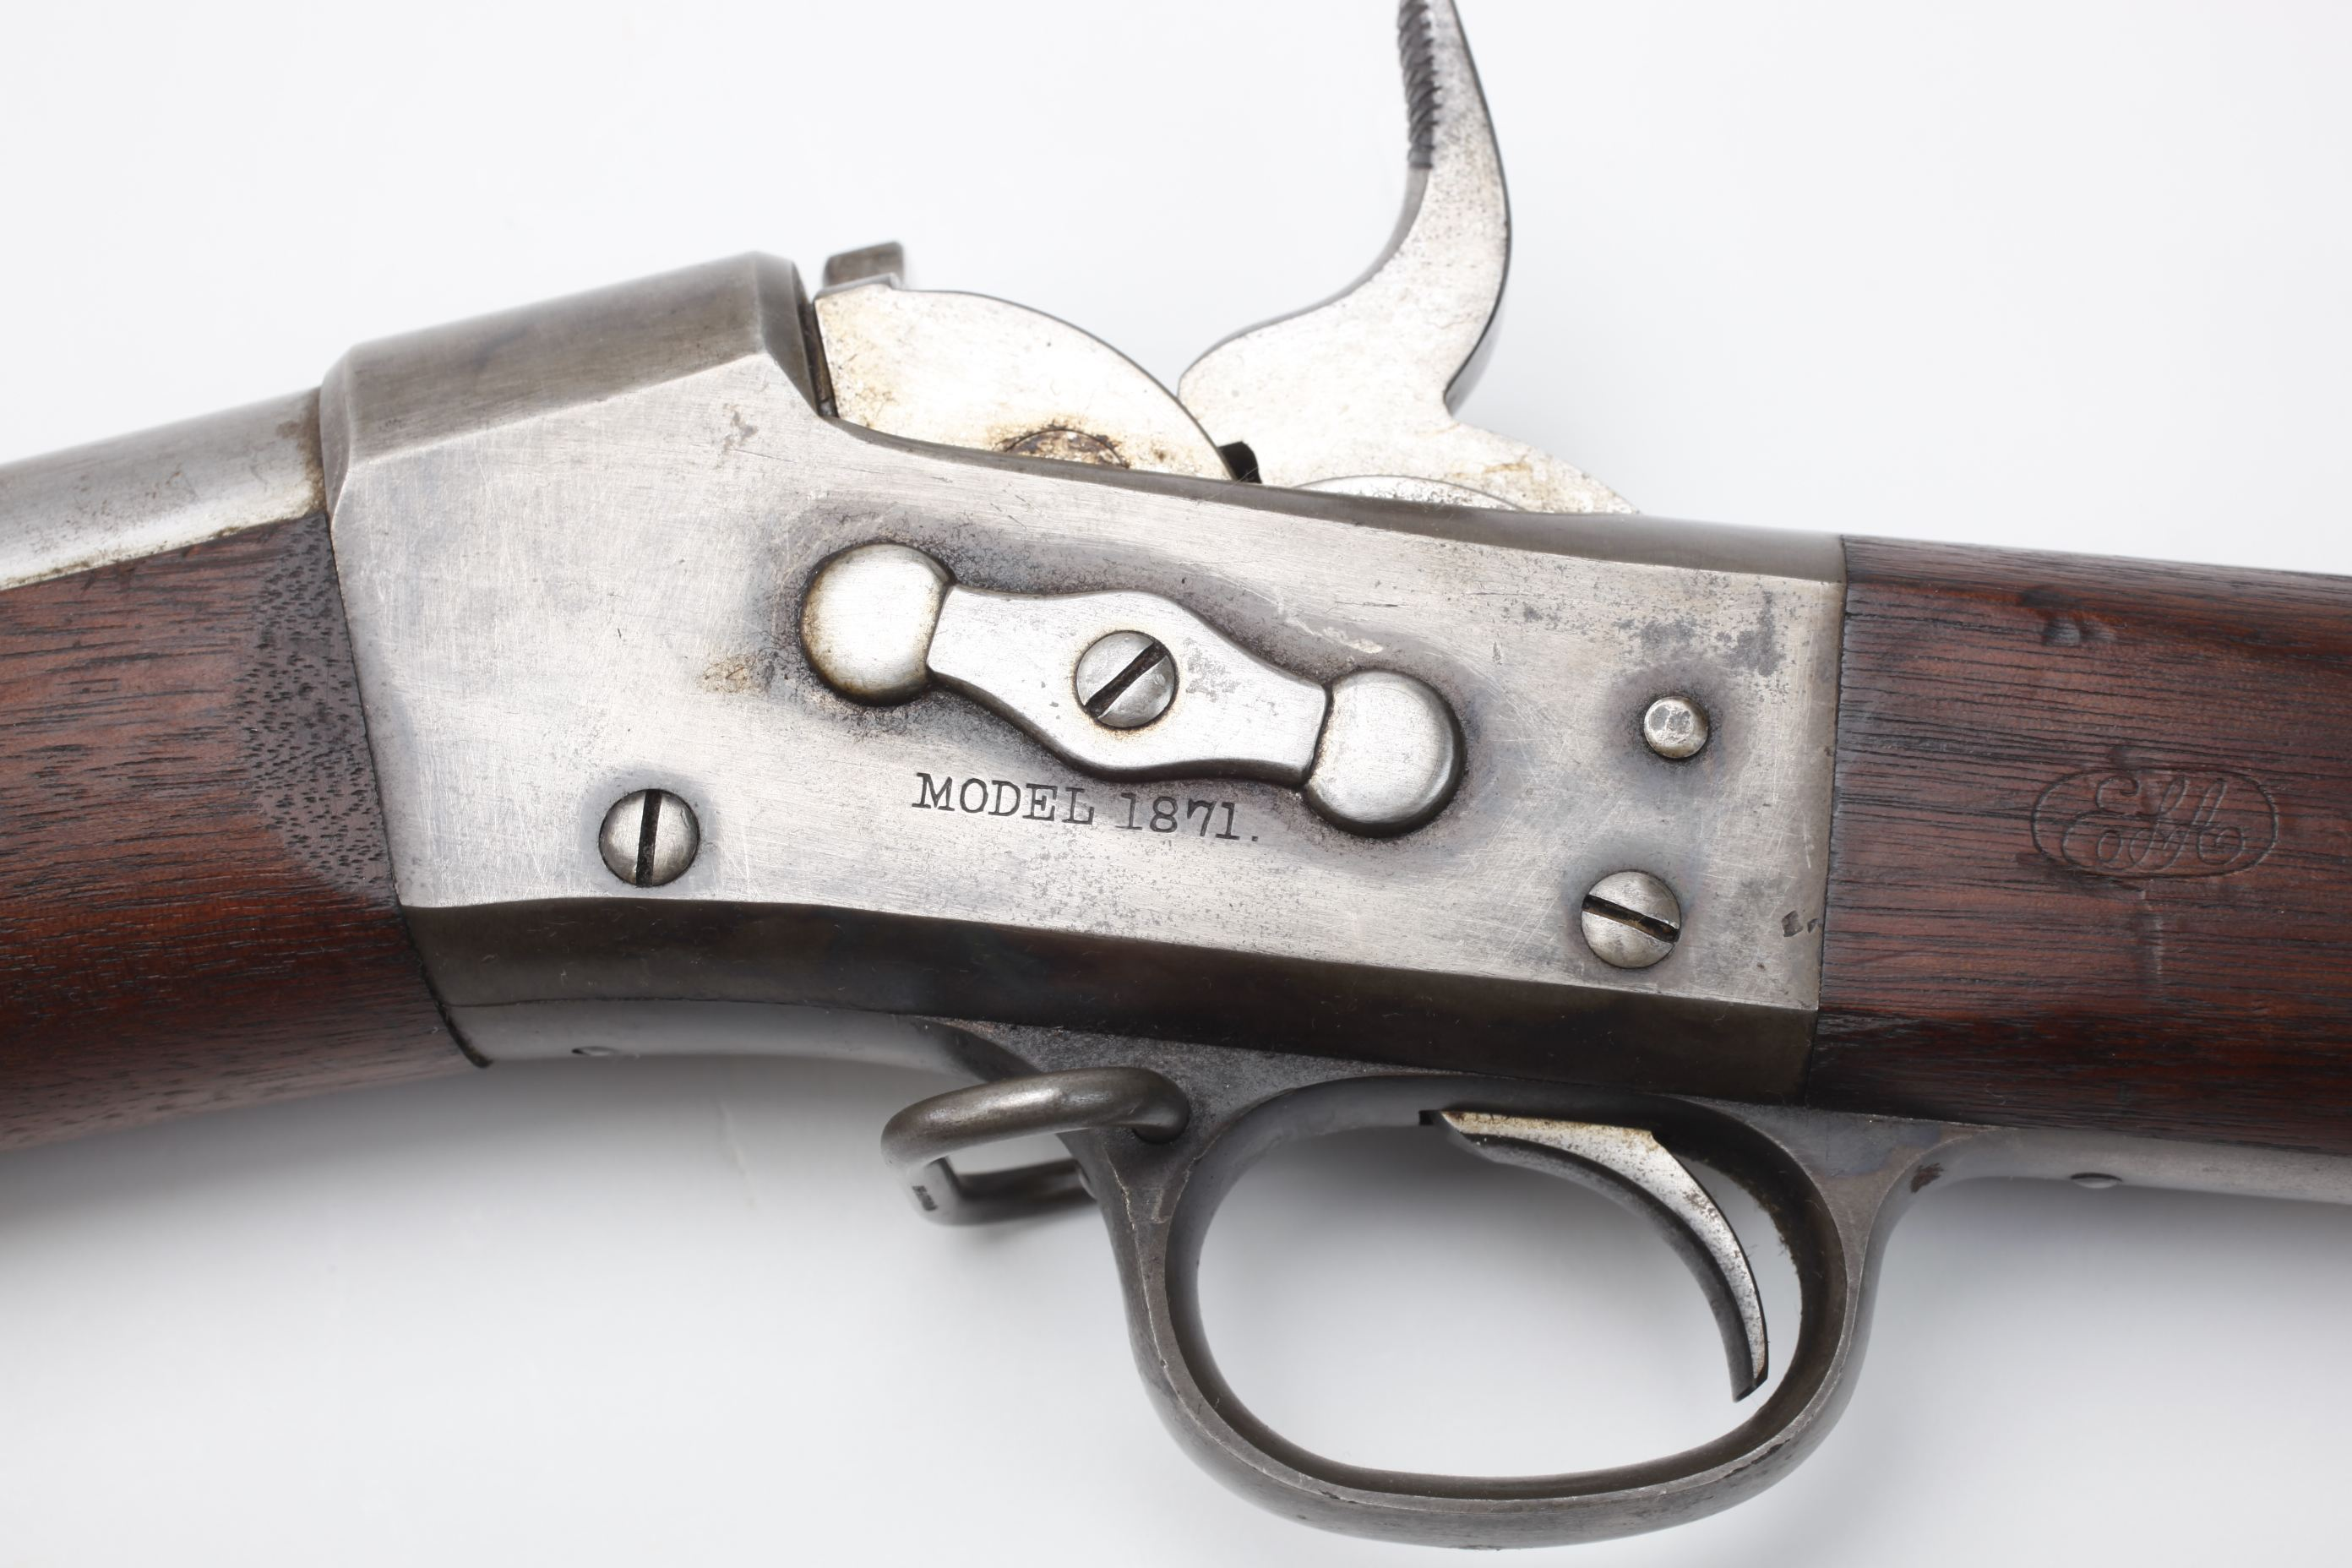 U.S. Springfield Model 1871 Rolling Block Rifle